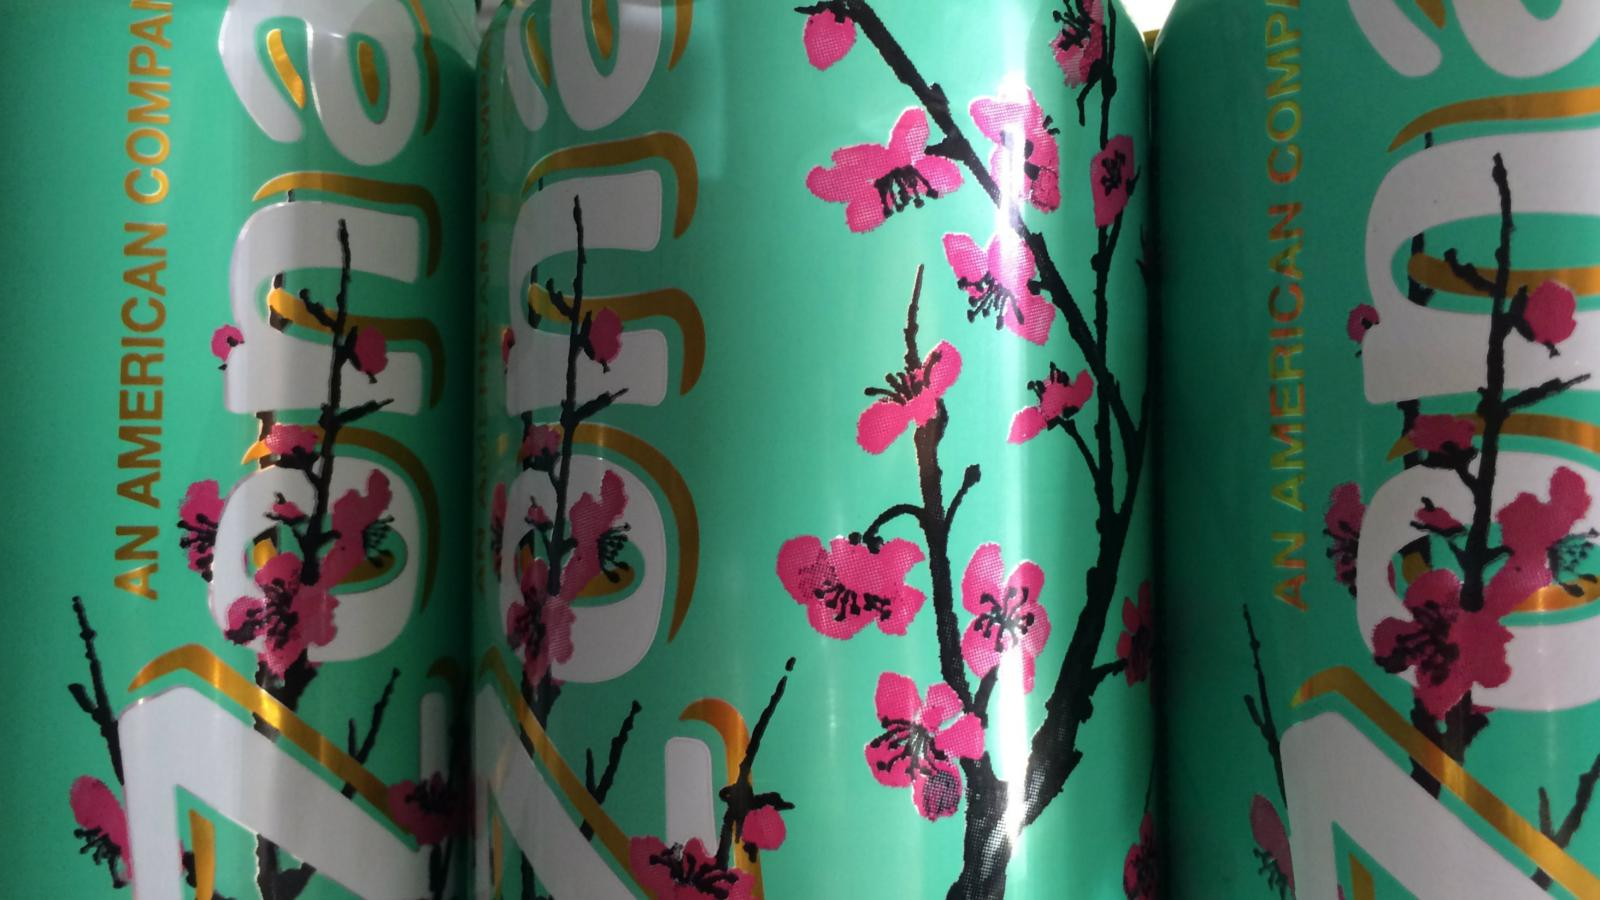 1a36ac6ed3 Arizona Iced Tea is having a really hard time keeping its dollar cans at a  dollar